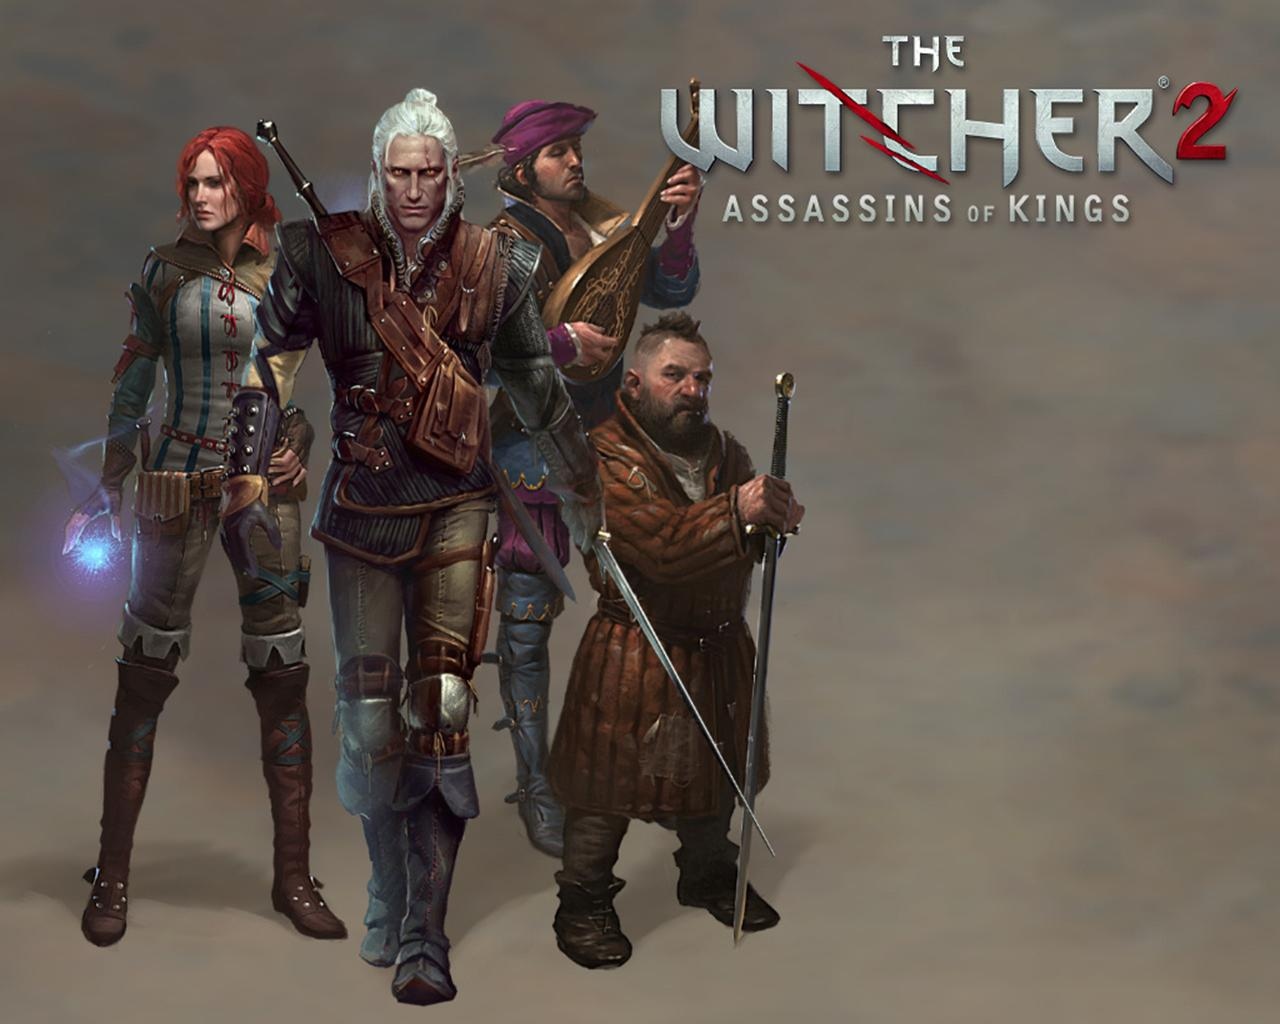 Images The Witcher The Witcher 2 Assassins of Kings Geralt of Rivia 1280x1024